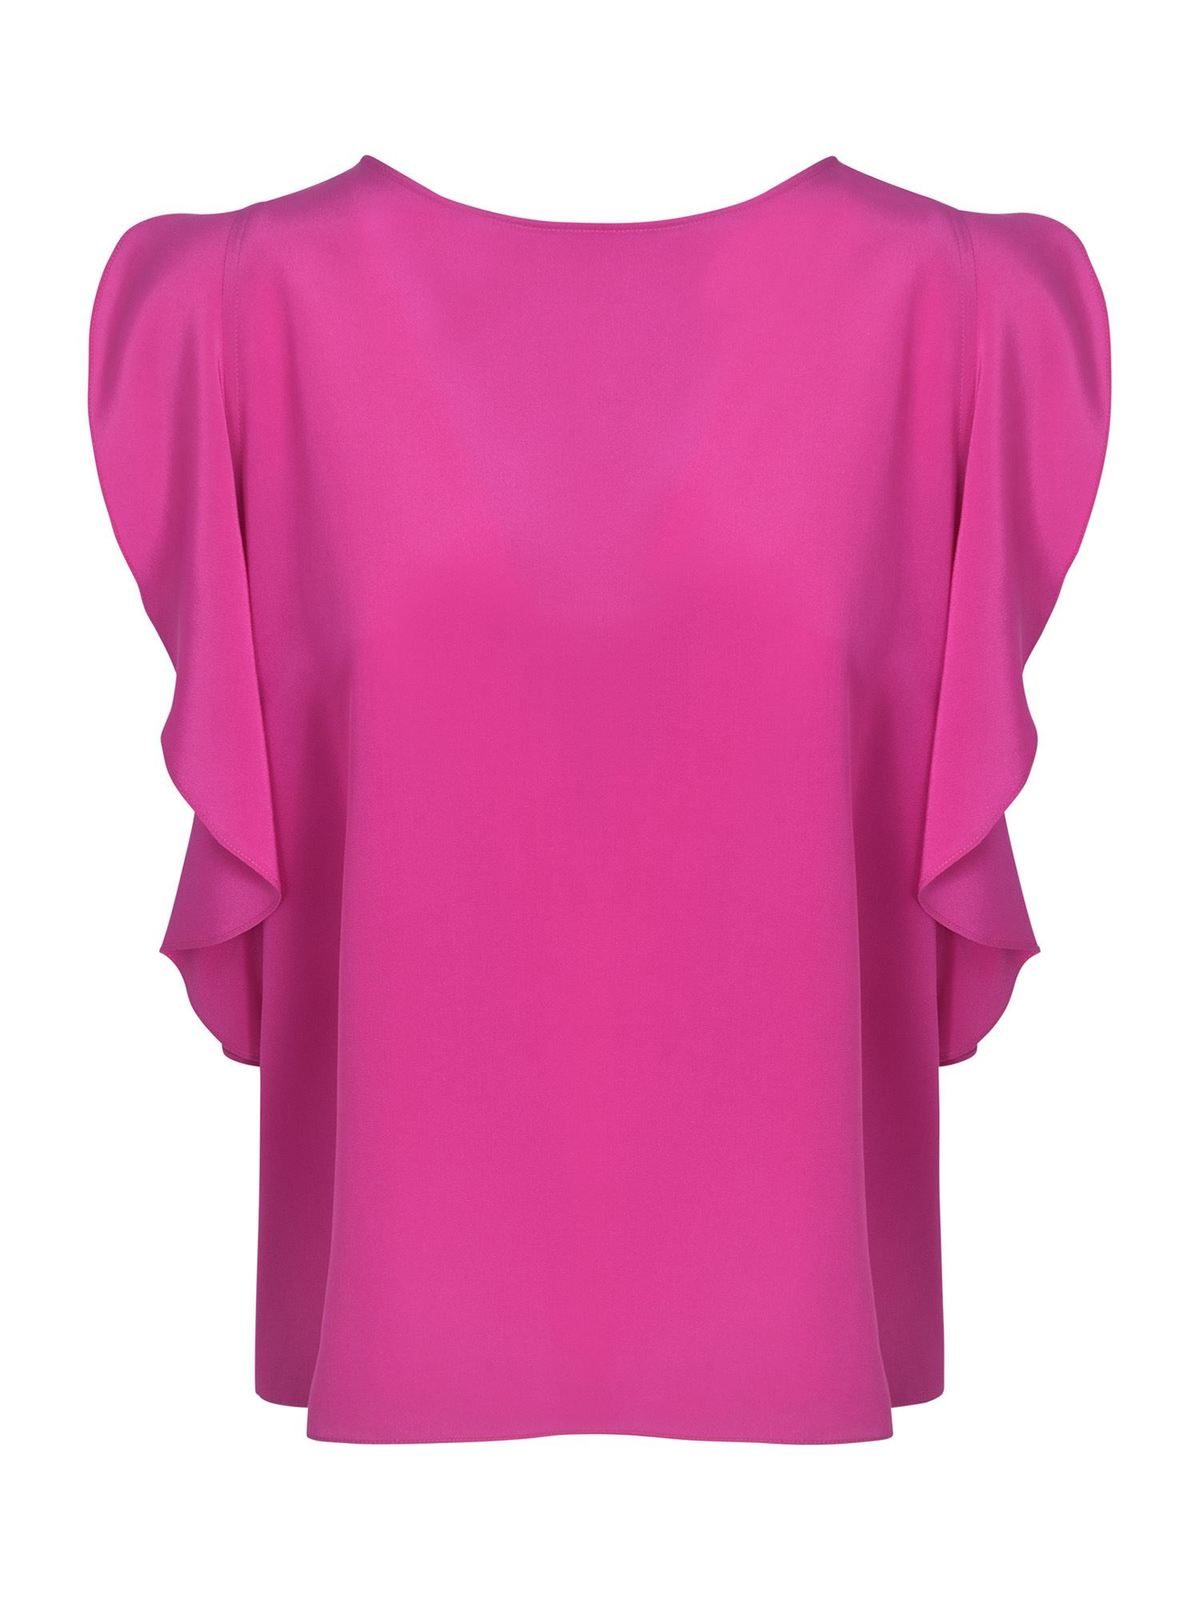 Aspesi Silks RUFFLED TOP IN FUCHSIA